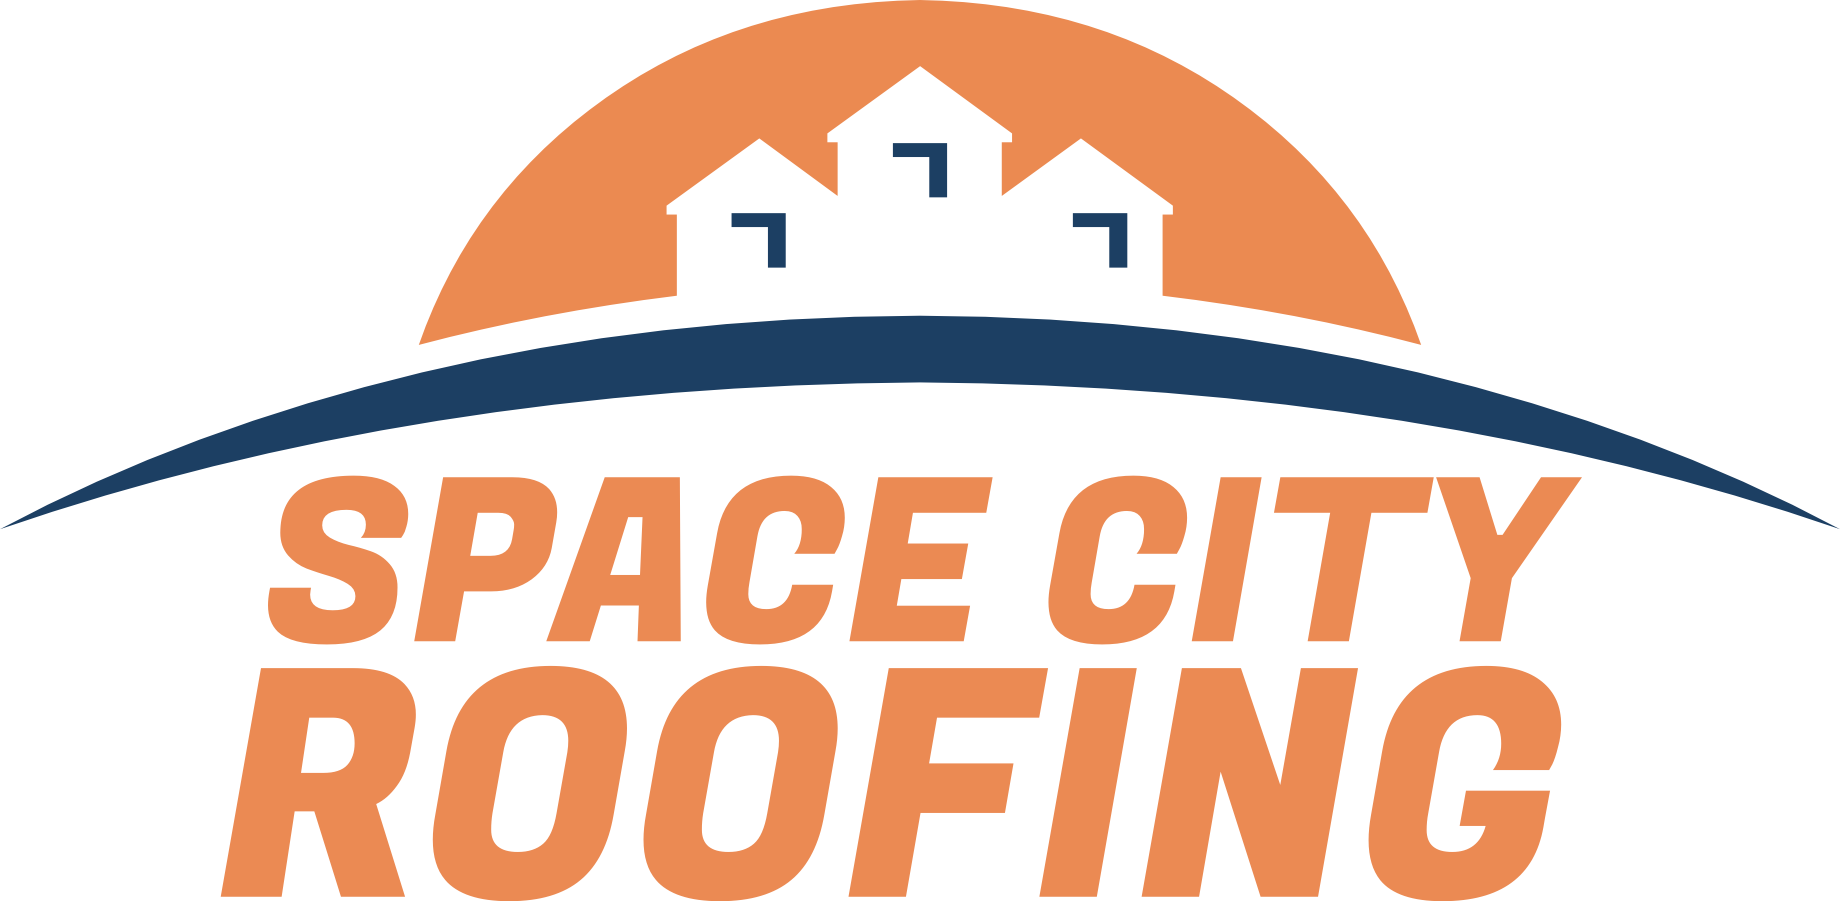 Space City Roofing